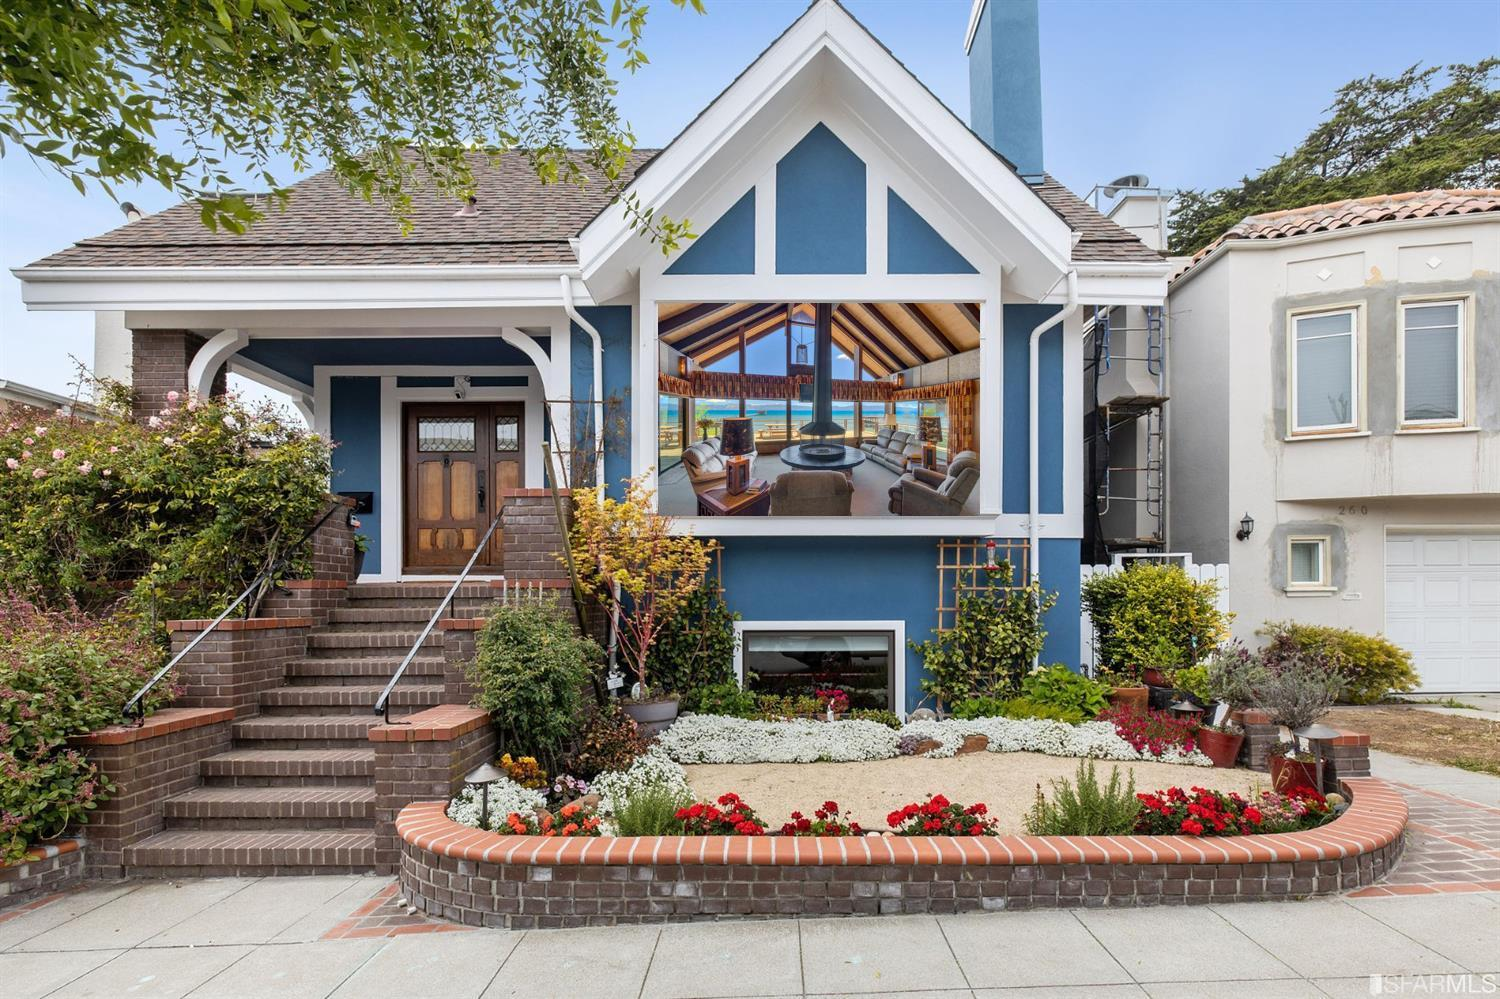 If You Sold Your Home For $1,355,000 Over Asking, Where Would You Go? What Would You Buy?